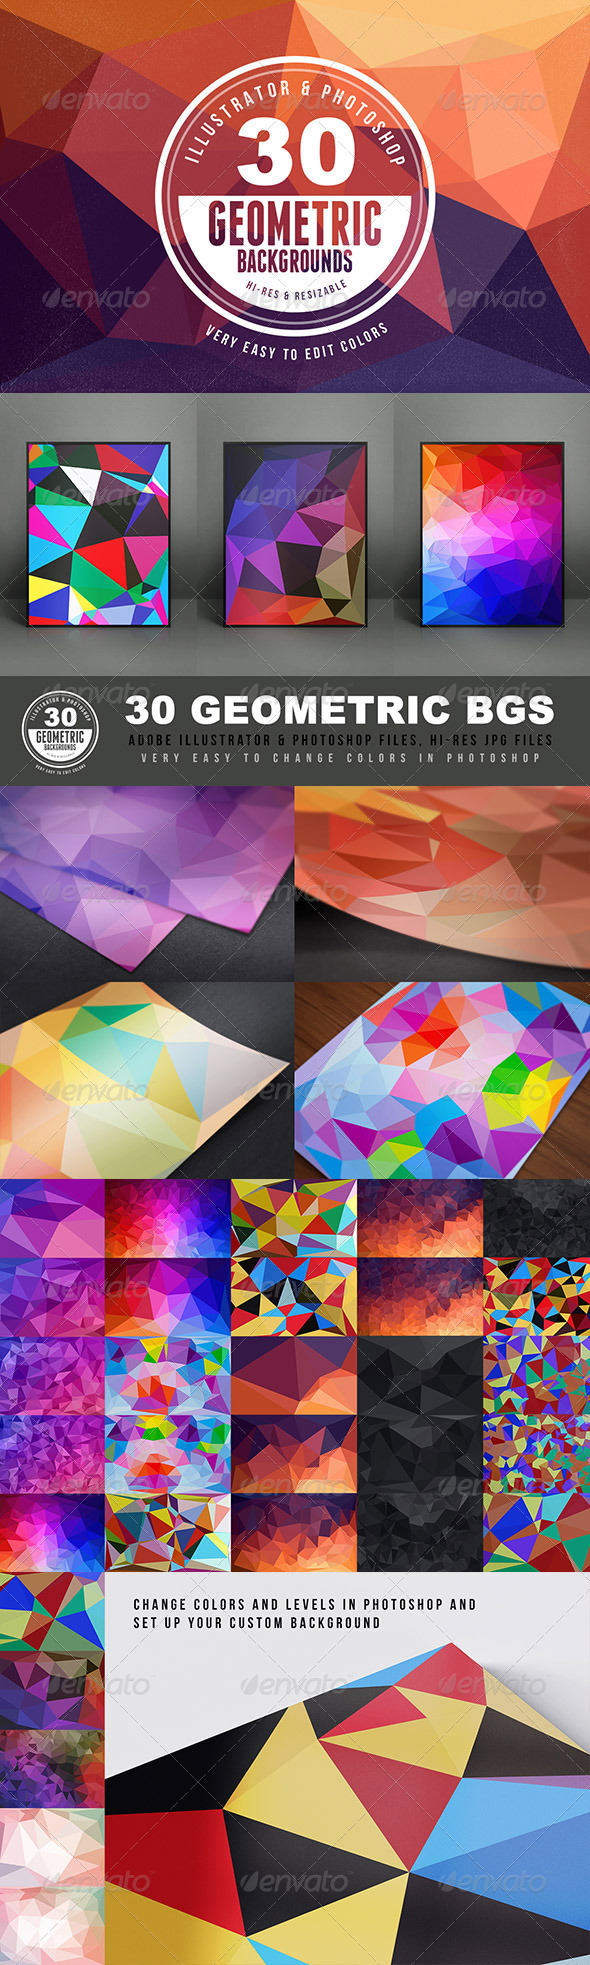 GraphicRiver Geometric Backgrounds or Textures 6057985